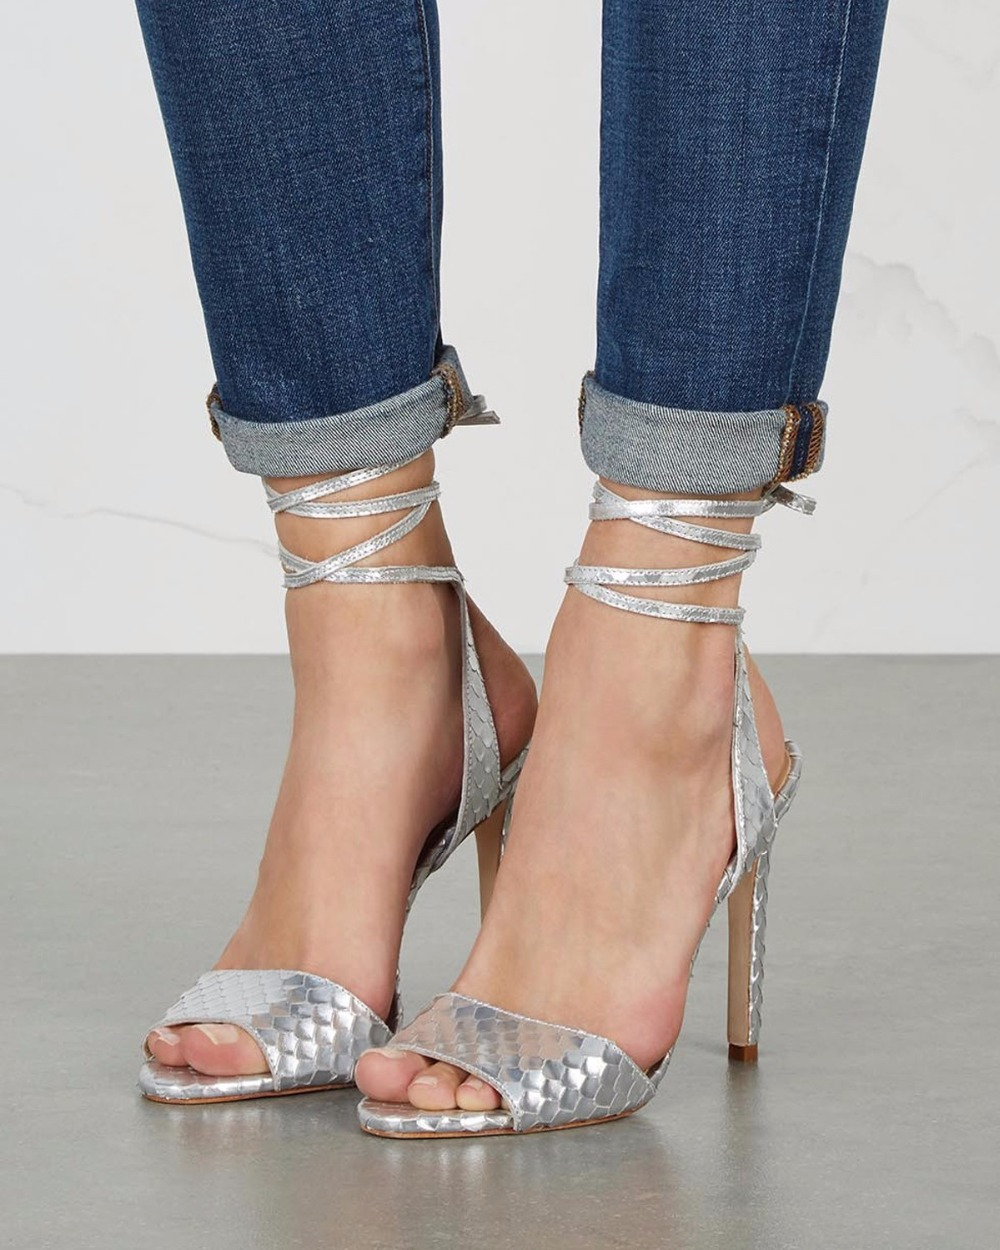 Silver color fashion style sandals for font b women b font high heel peep toe elegant